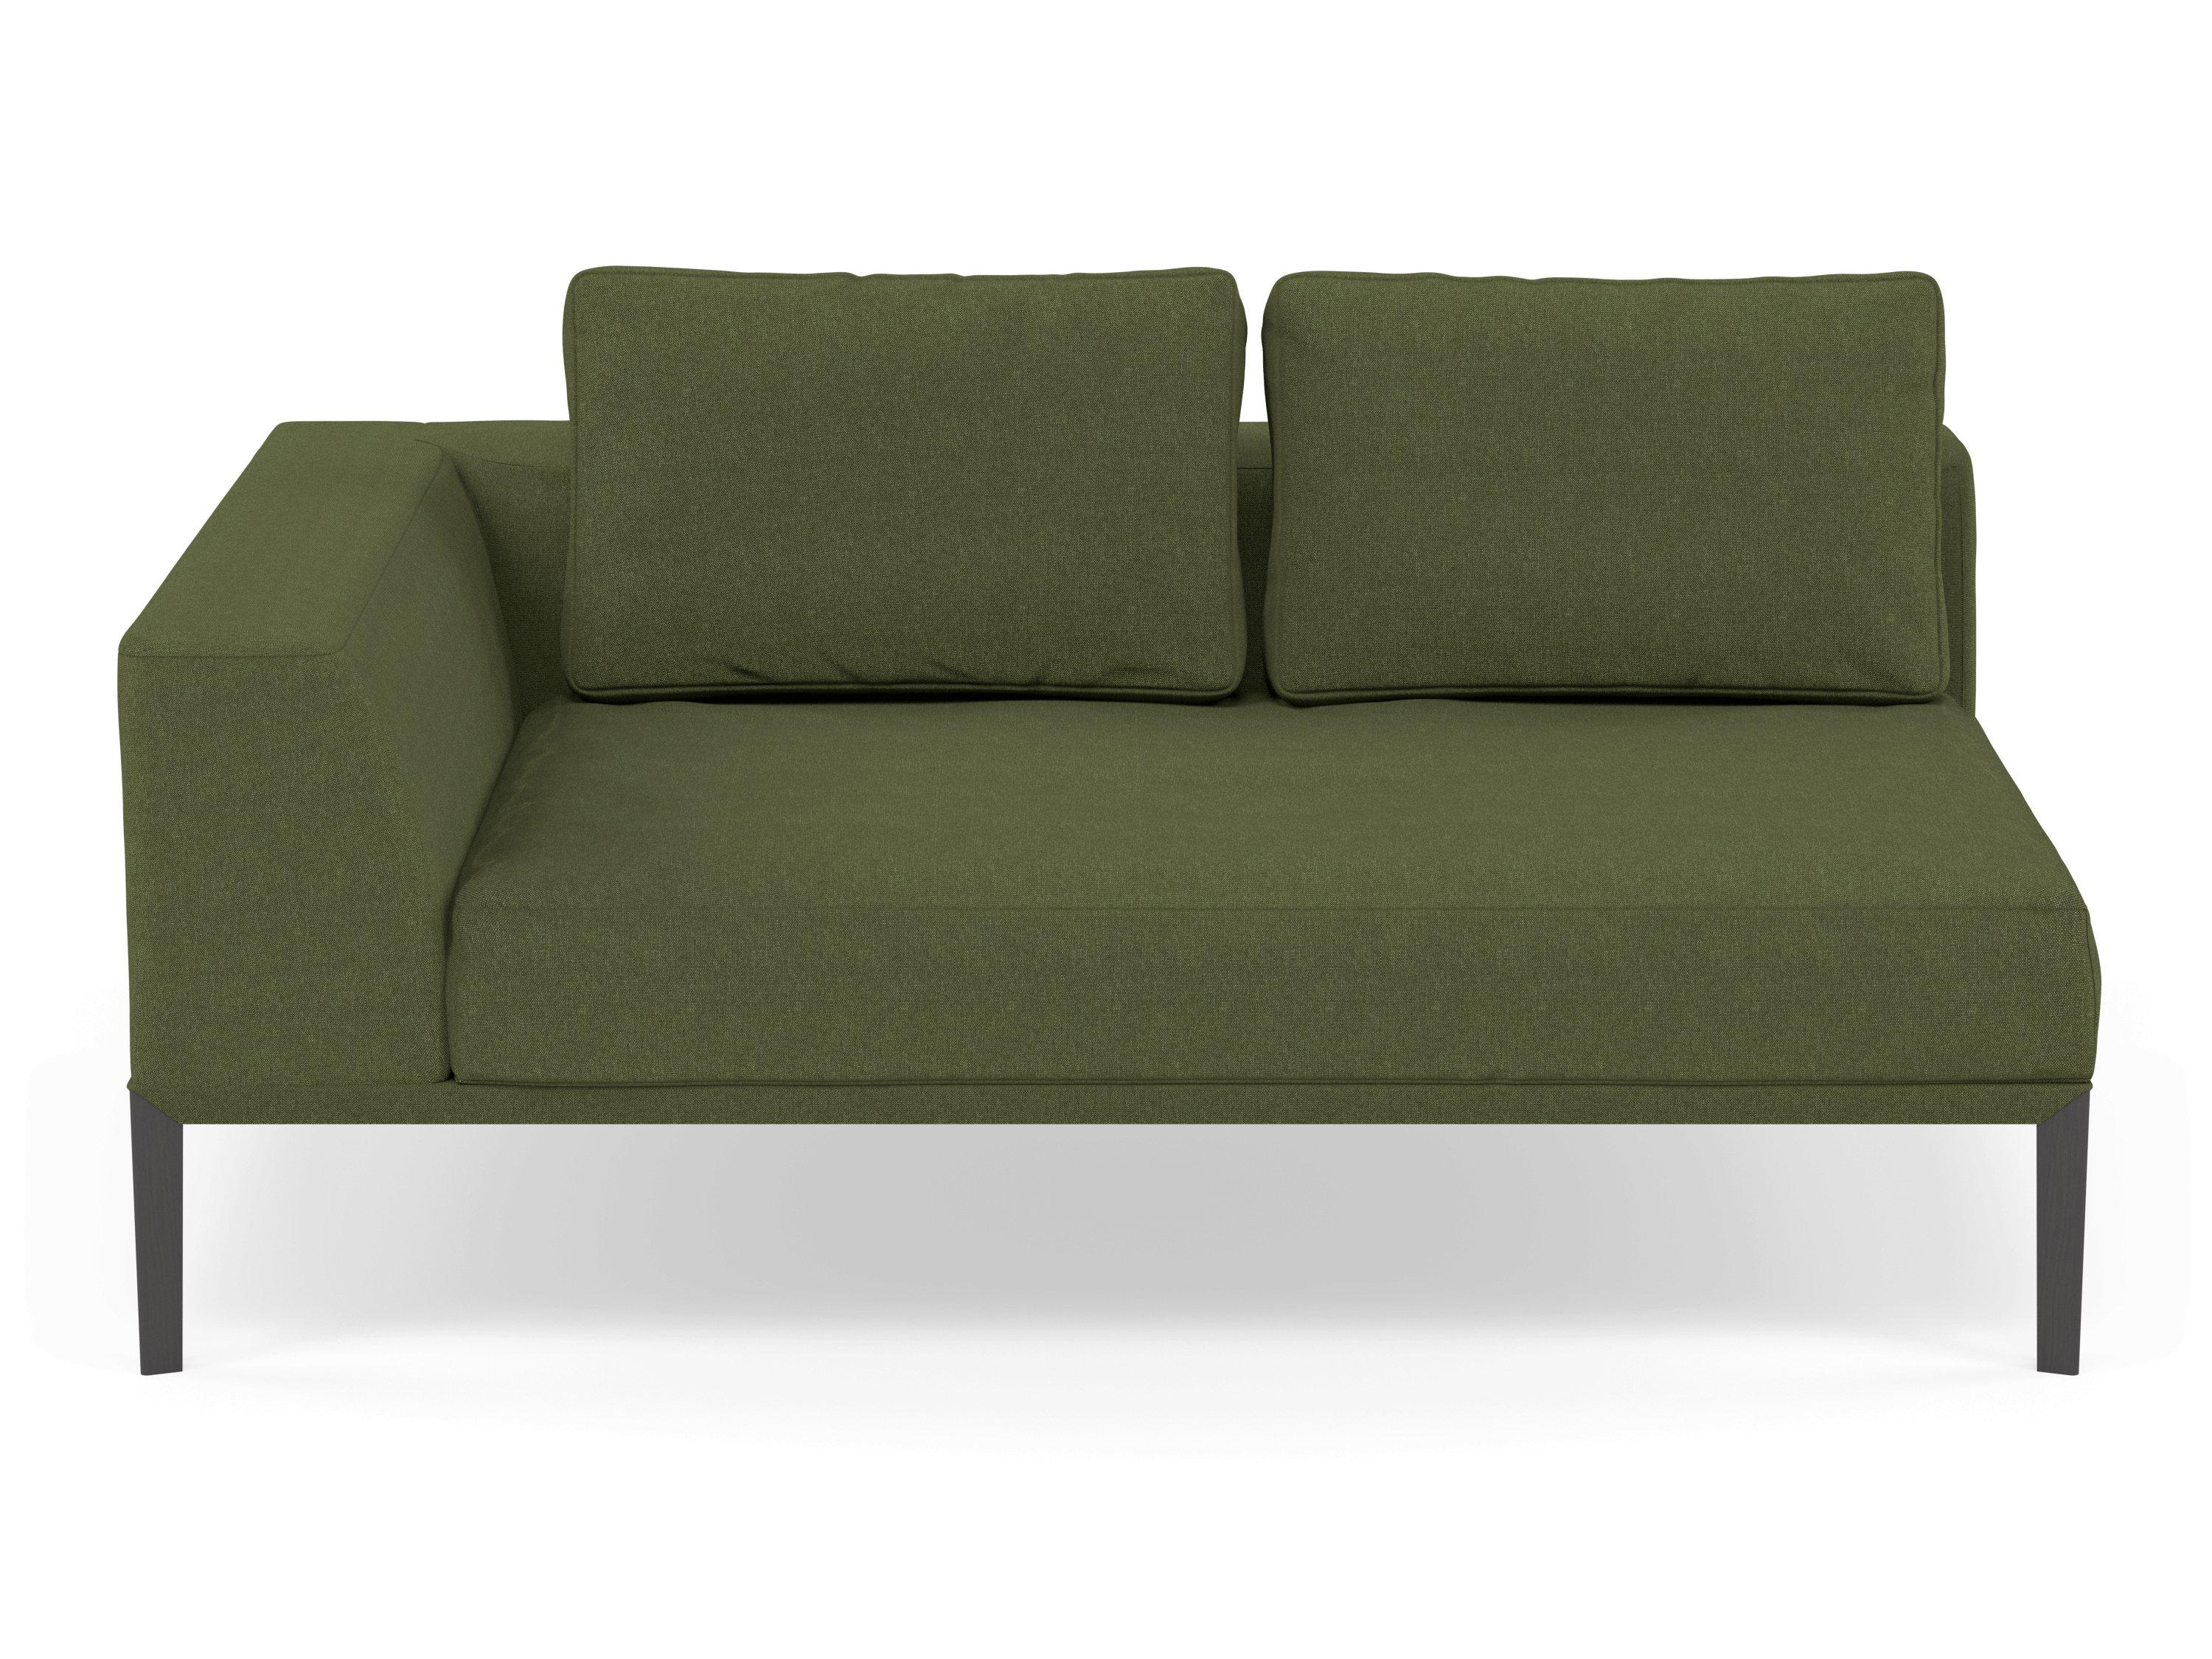 Tremendous Modern 2 Seater Chaise Lounge Style Sofa With Right Armrest In Seaweed Green Fabric Uwap Interior Chair Design Uwaporg